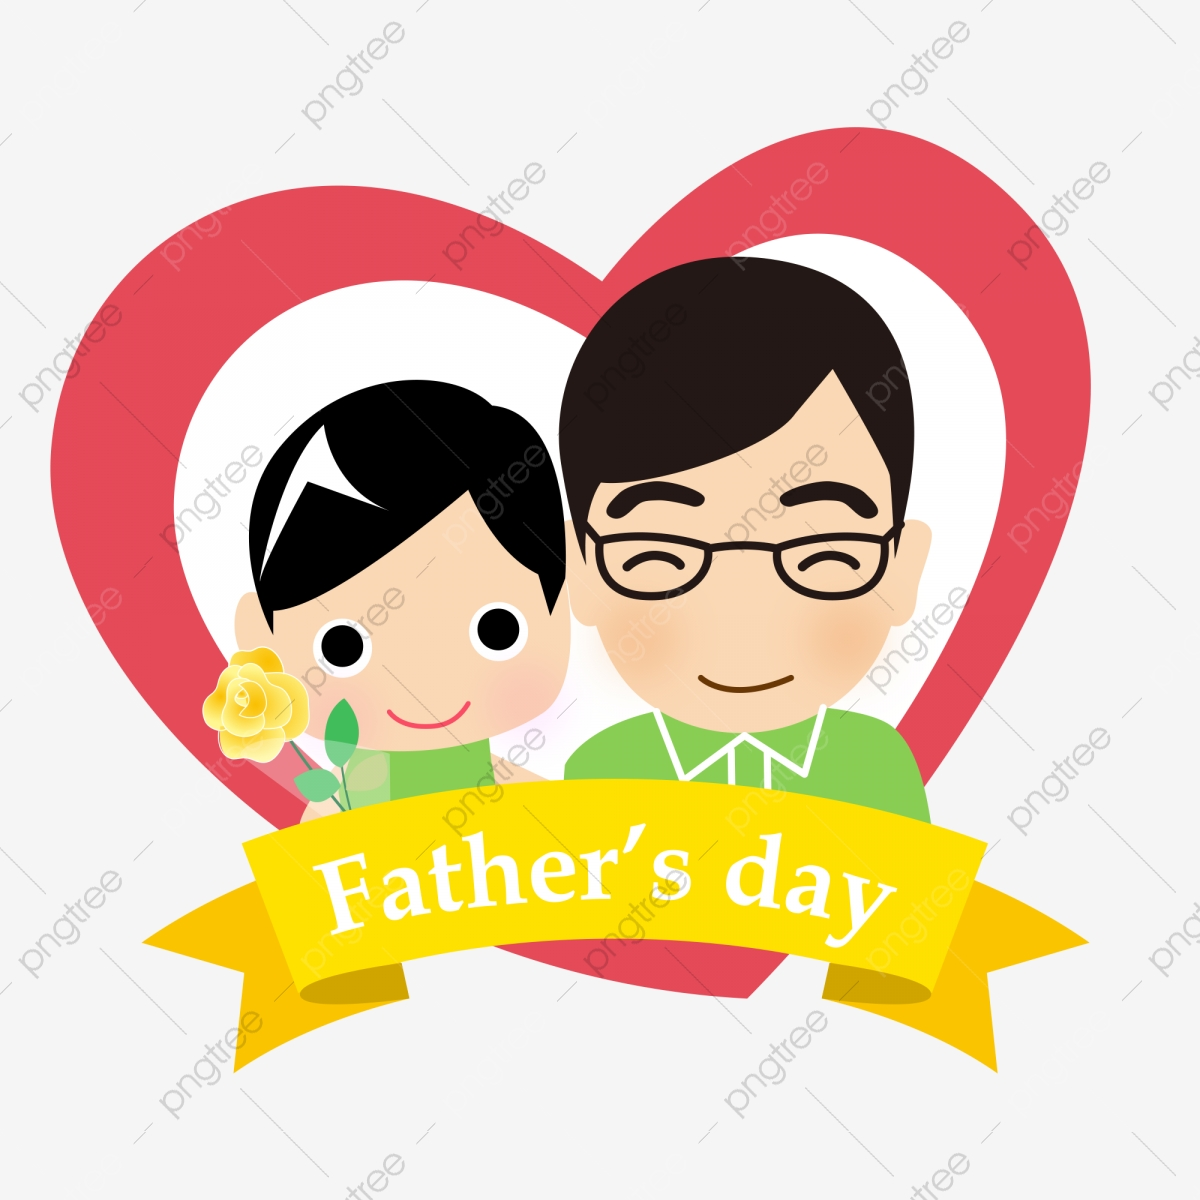 hight resolution of commercial use resource upgrade to premium plan and get license authorization upgradenow fathers day